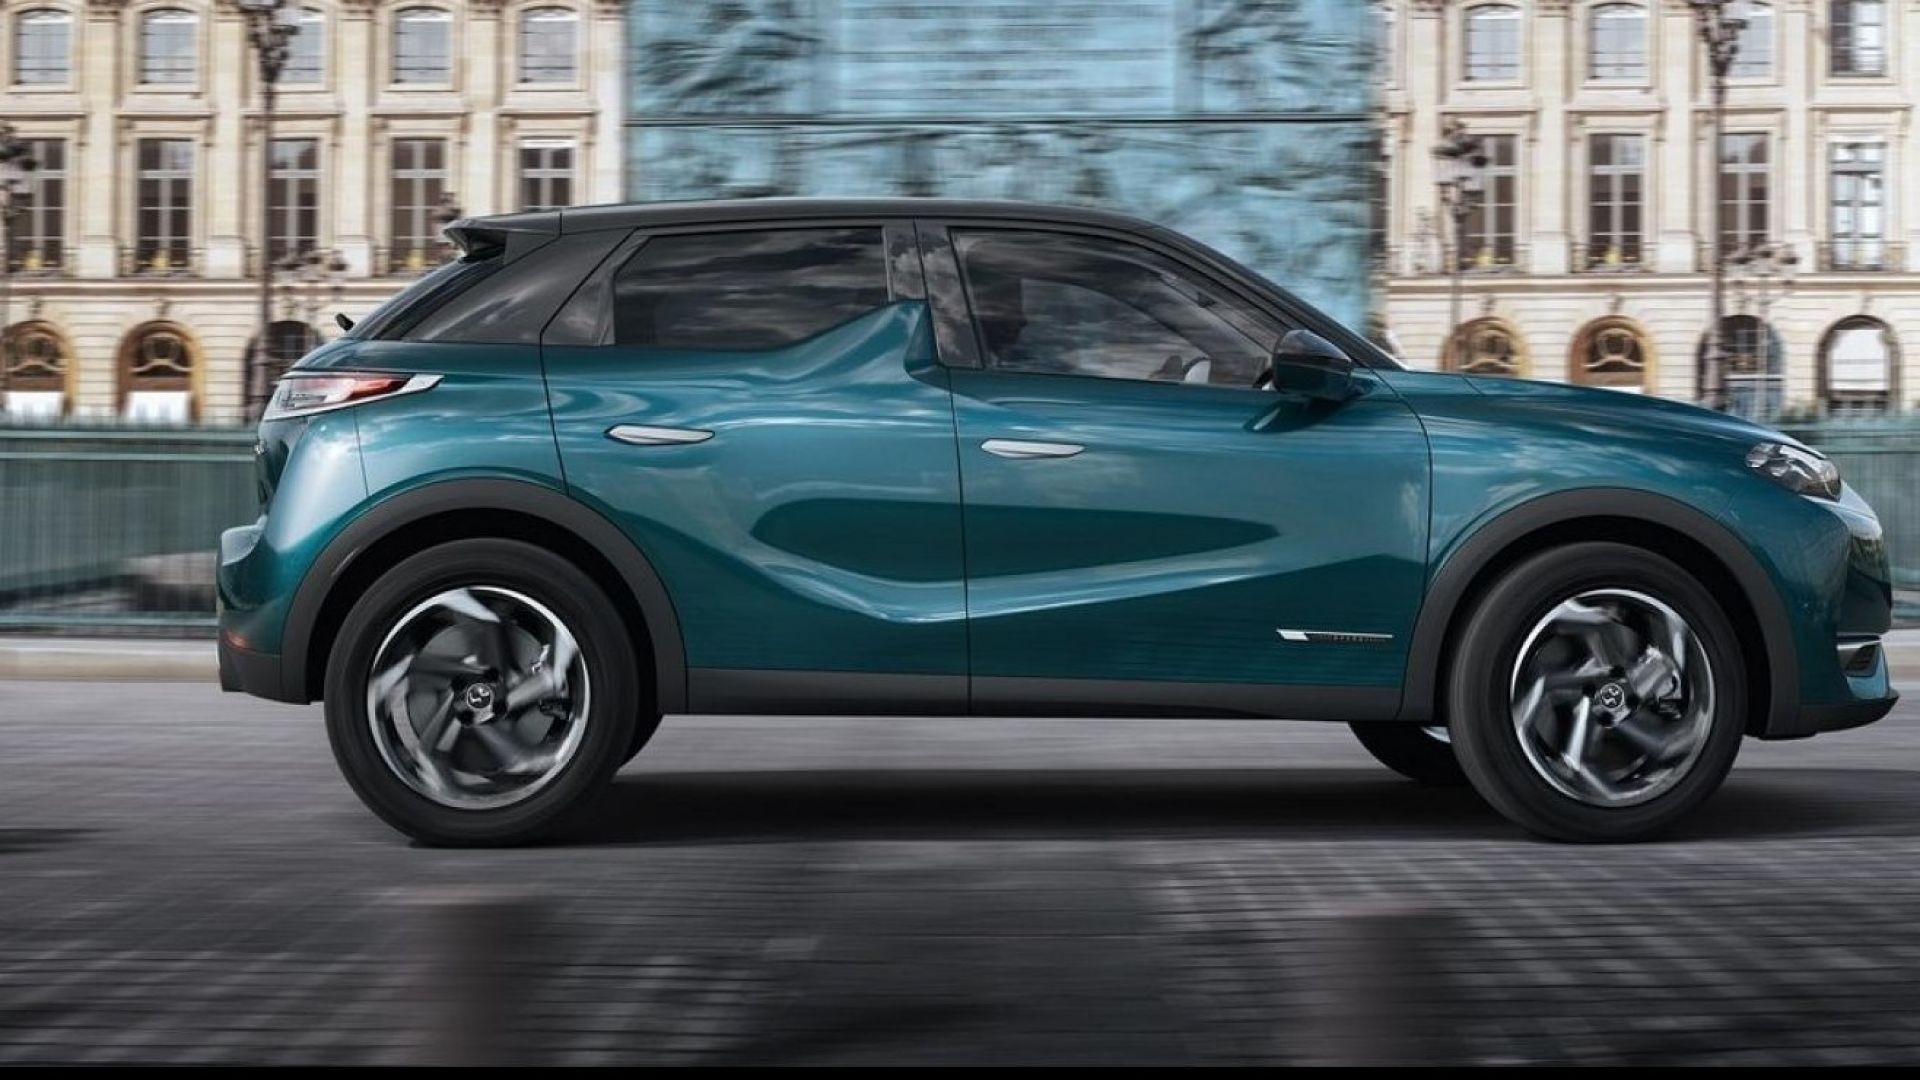 4 X 4 >> Salone di Parigi 2018: DS3 Crossback elettrica, DS7 ibrida ...